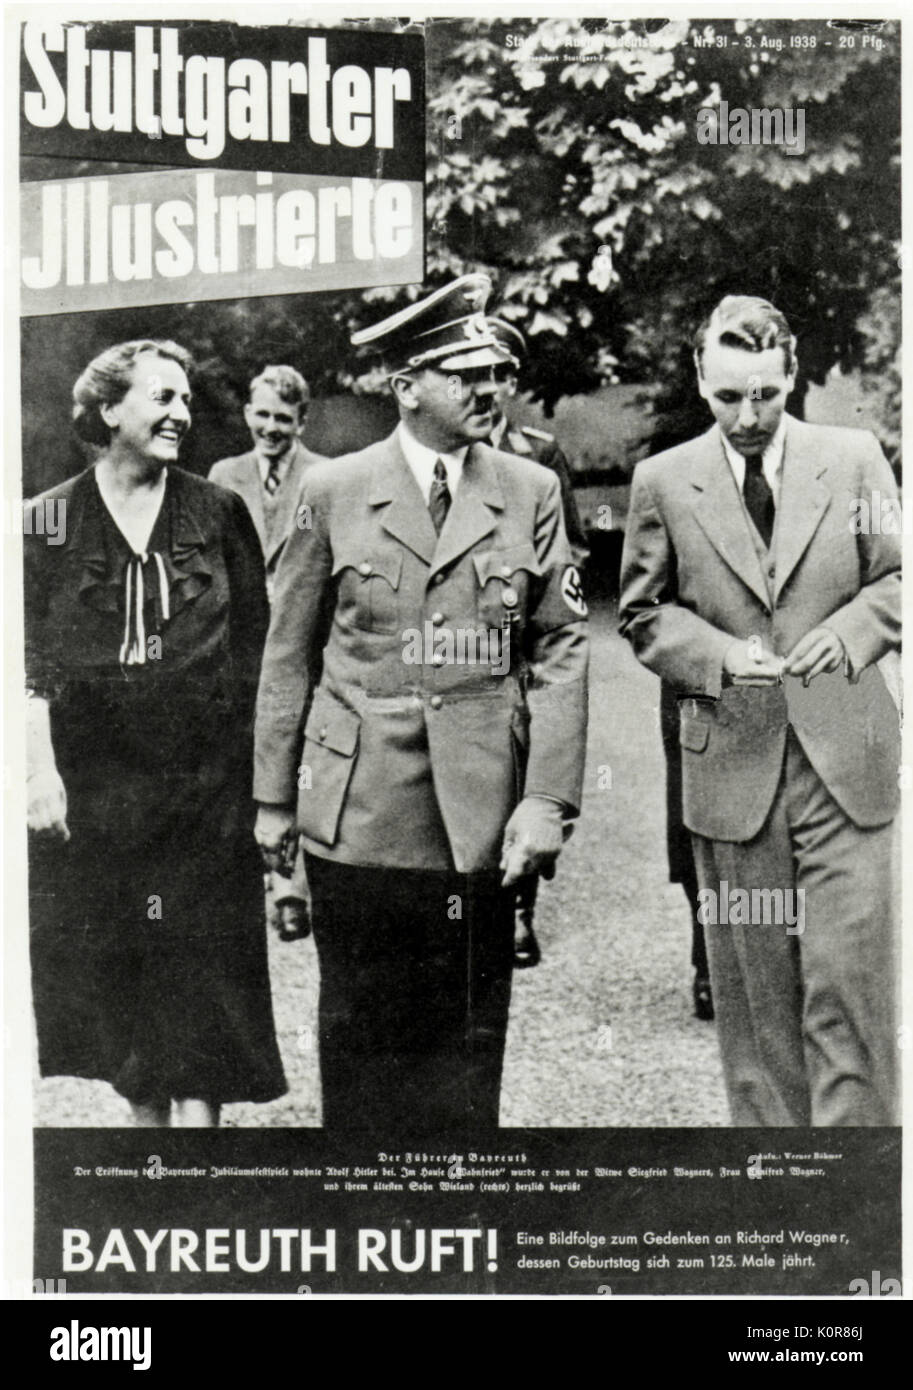 Winifred, Wieland and Wolfgang Wagner with Hitler at Bayreuth -on front cover of 'Stuttgarter Illustrierte',  3rd August 1938. Caption reads: ' Bayreuth calls'('Ruft').  Photo in commemoration of 125th anniversary of  Richard Wagner's birth. - Stock Image